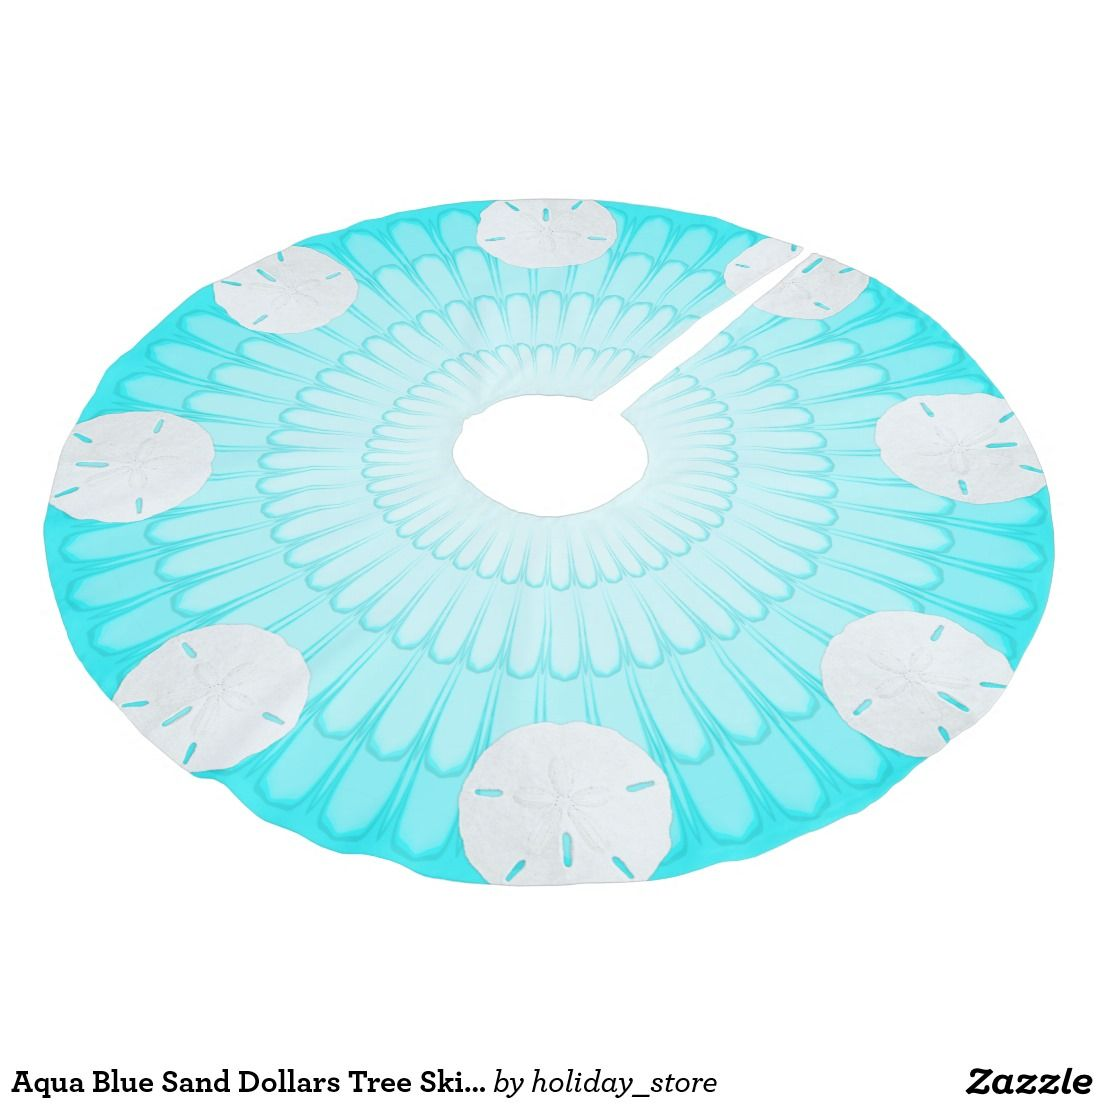 Aqua Christmas Tree Skirt: Aqua Blue Sand Dollars Tree Skirt